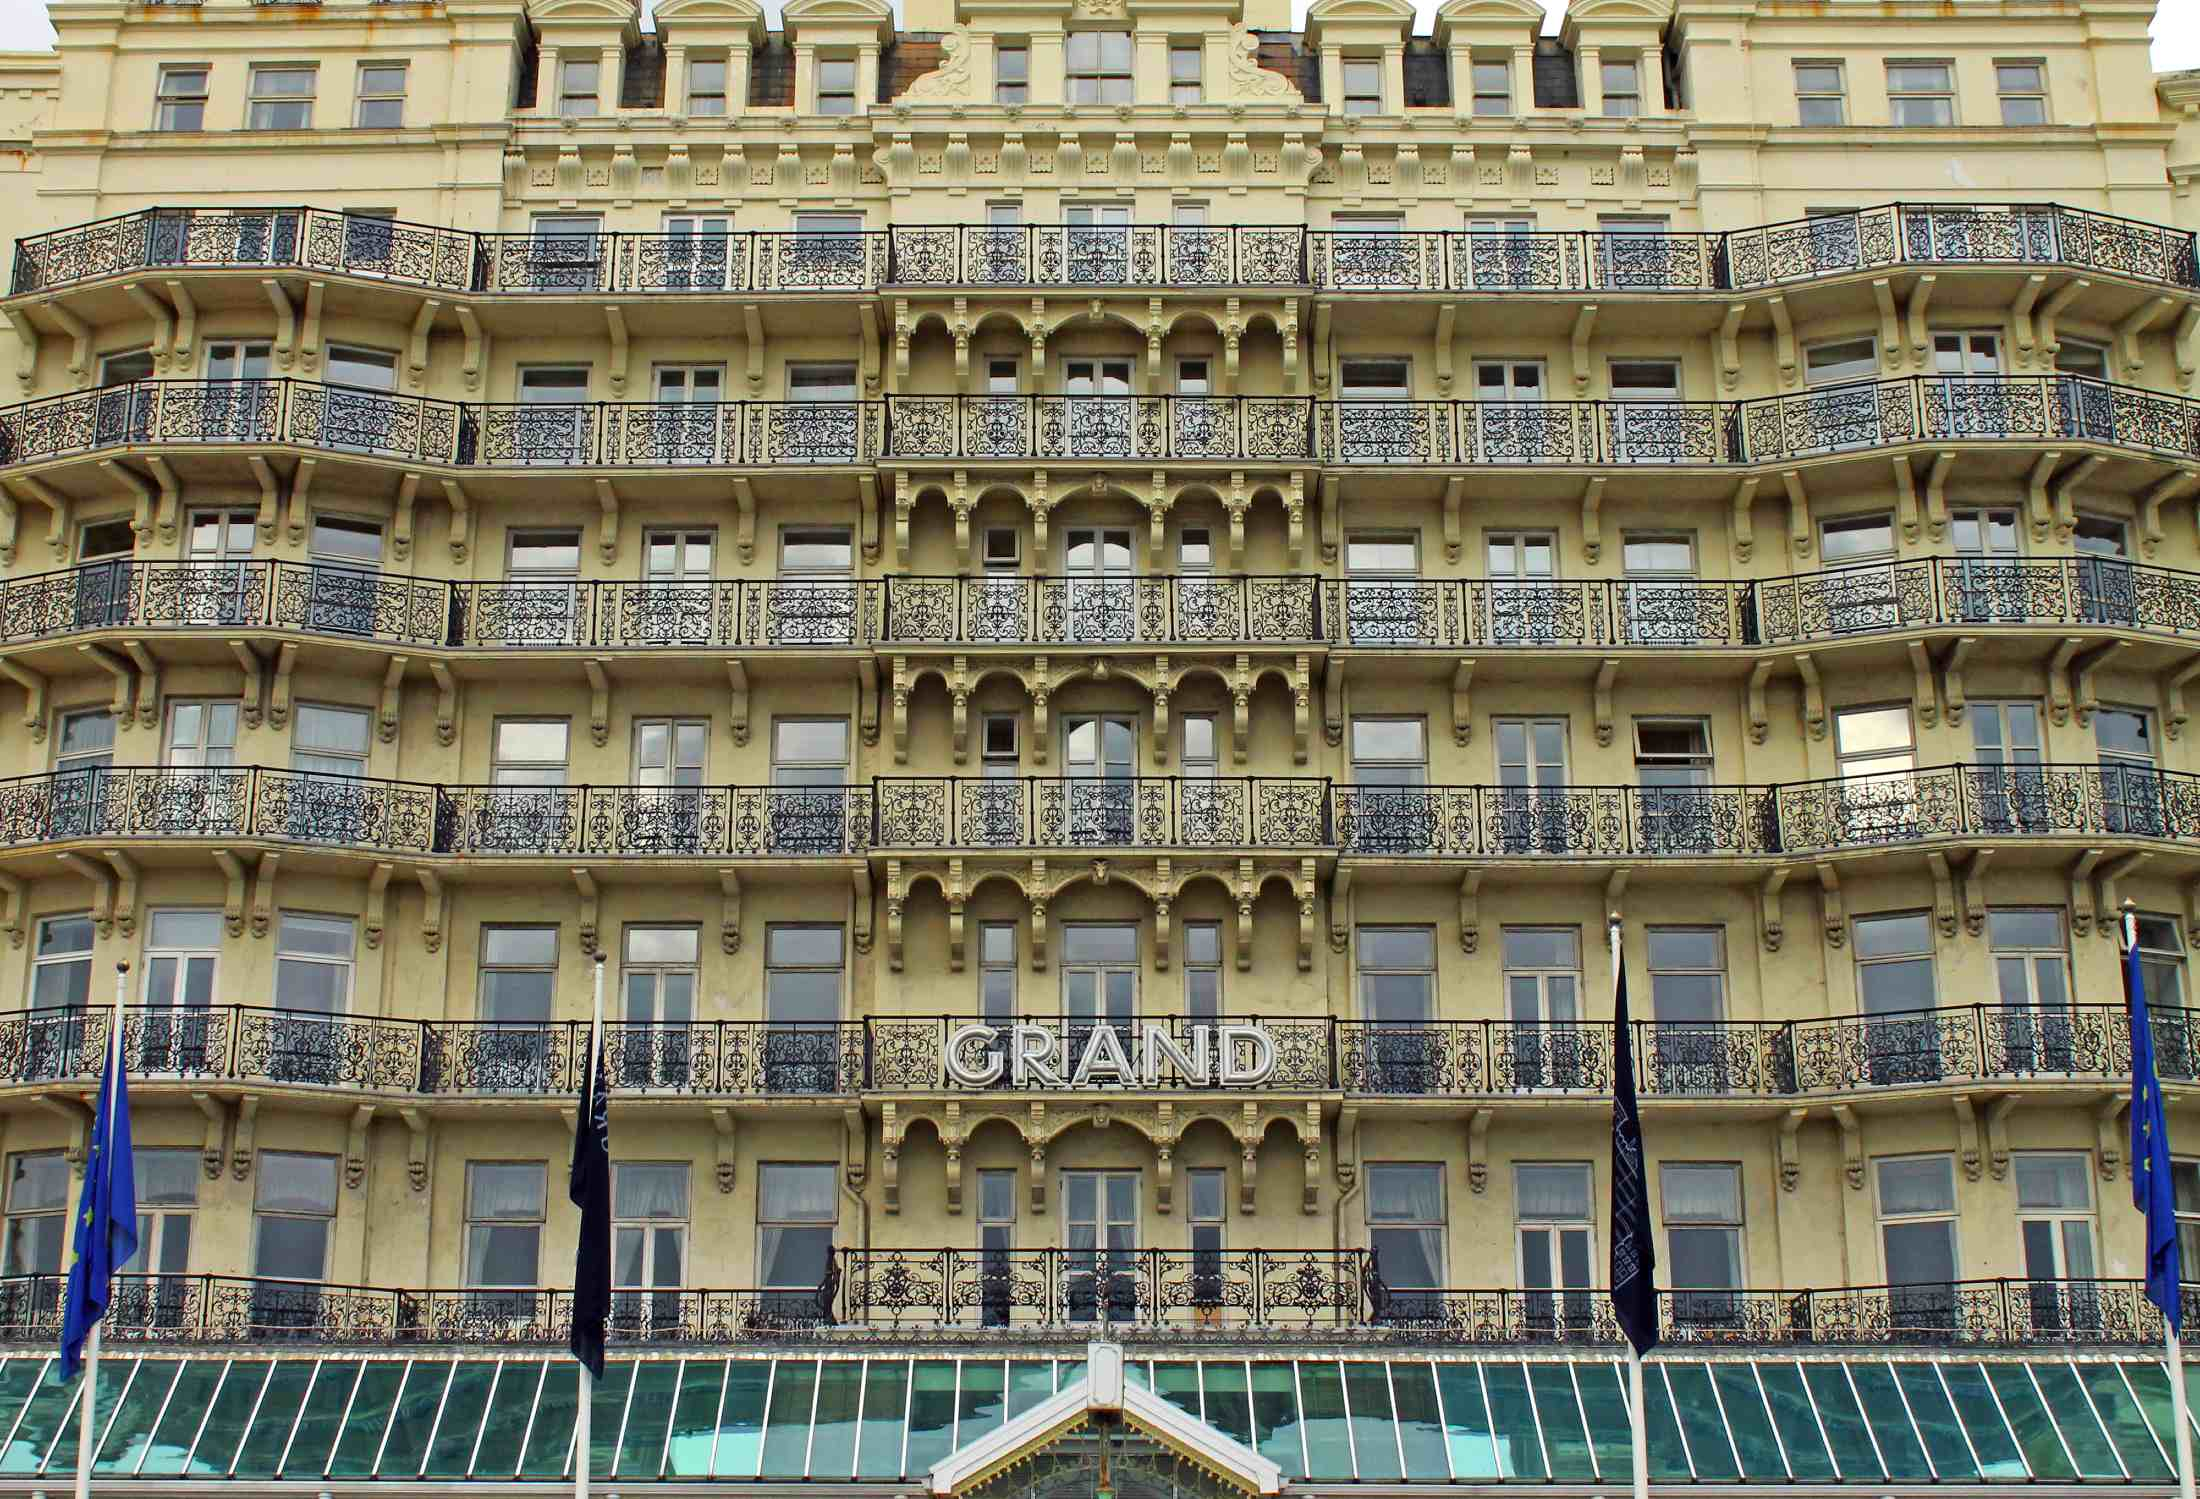 The Grand Hotel - Focal Journey